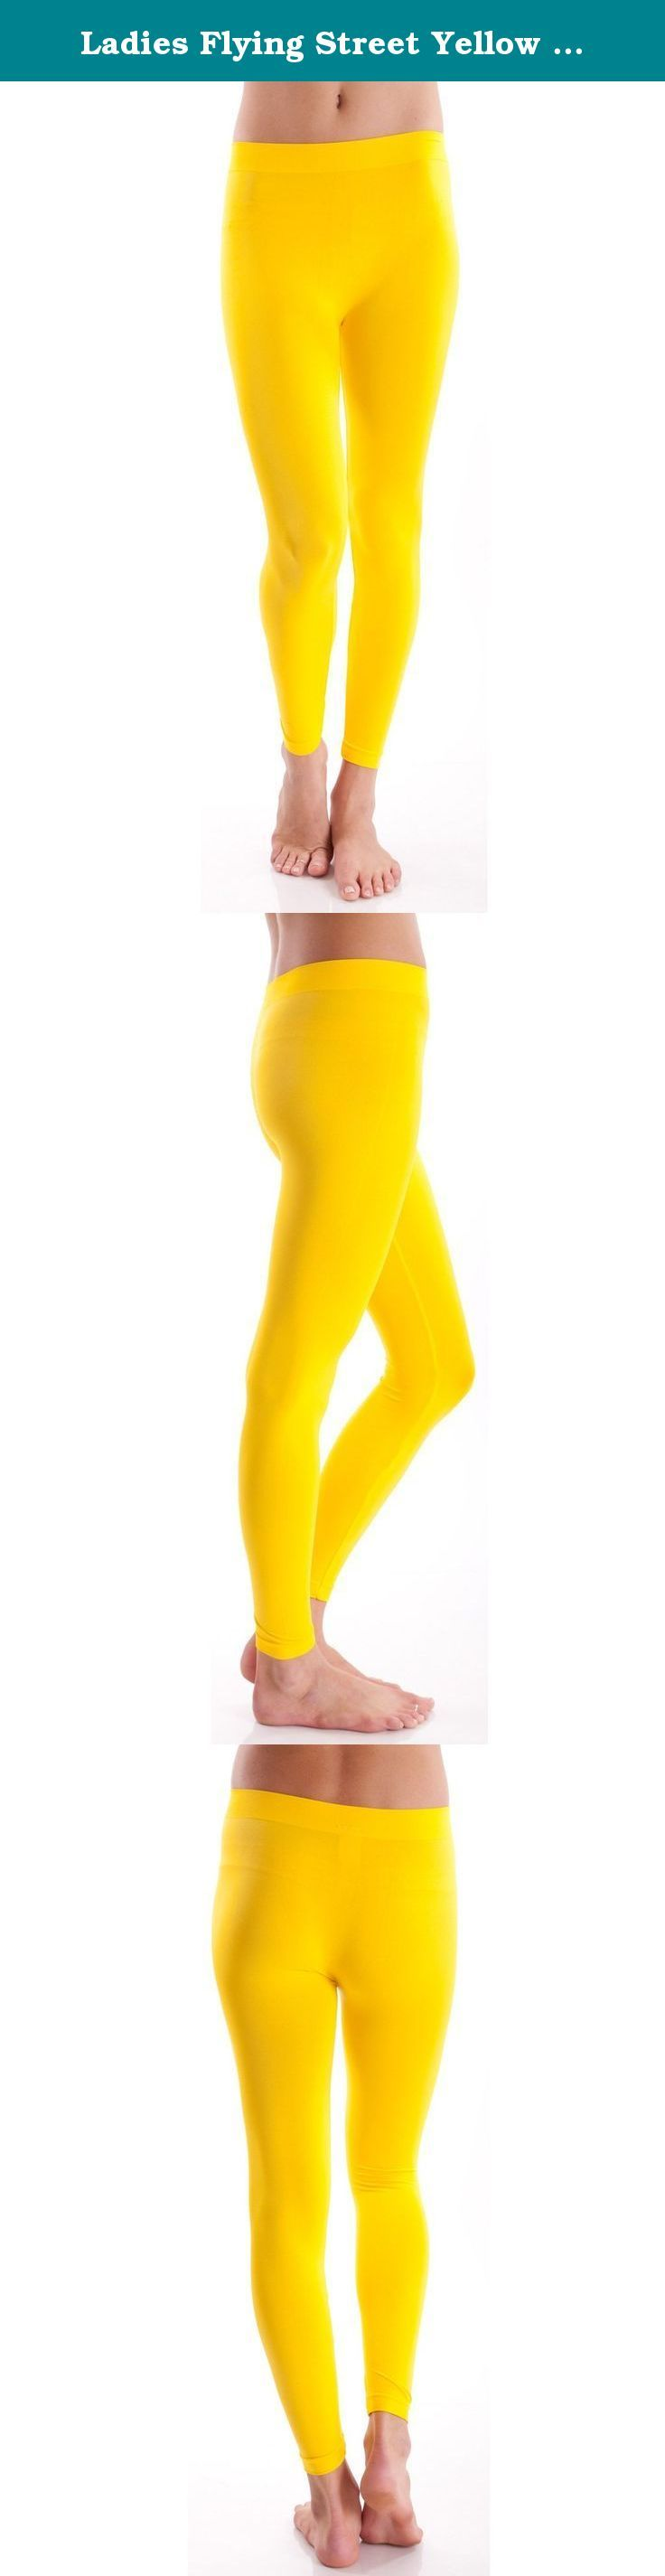 Ladies Flying Street Yellow Full Length Seamless Leggings. Ladies Yellow Flying Street Full Length Seamless Leggings. Solid color, Form-fitting, 92% Nylon, 8% Spandex.